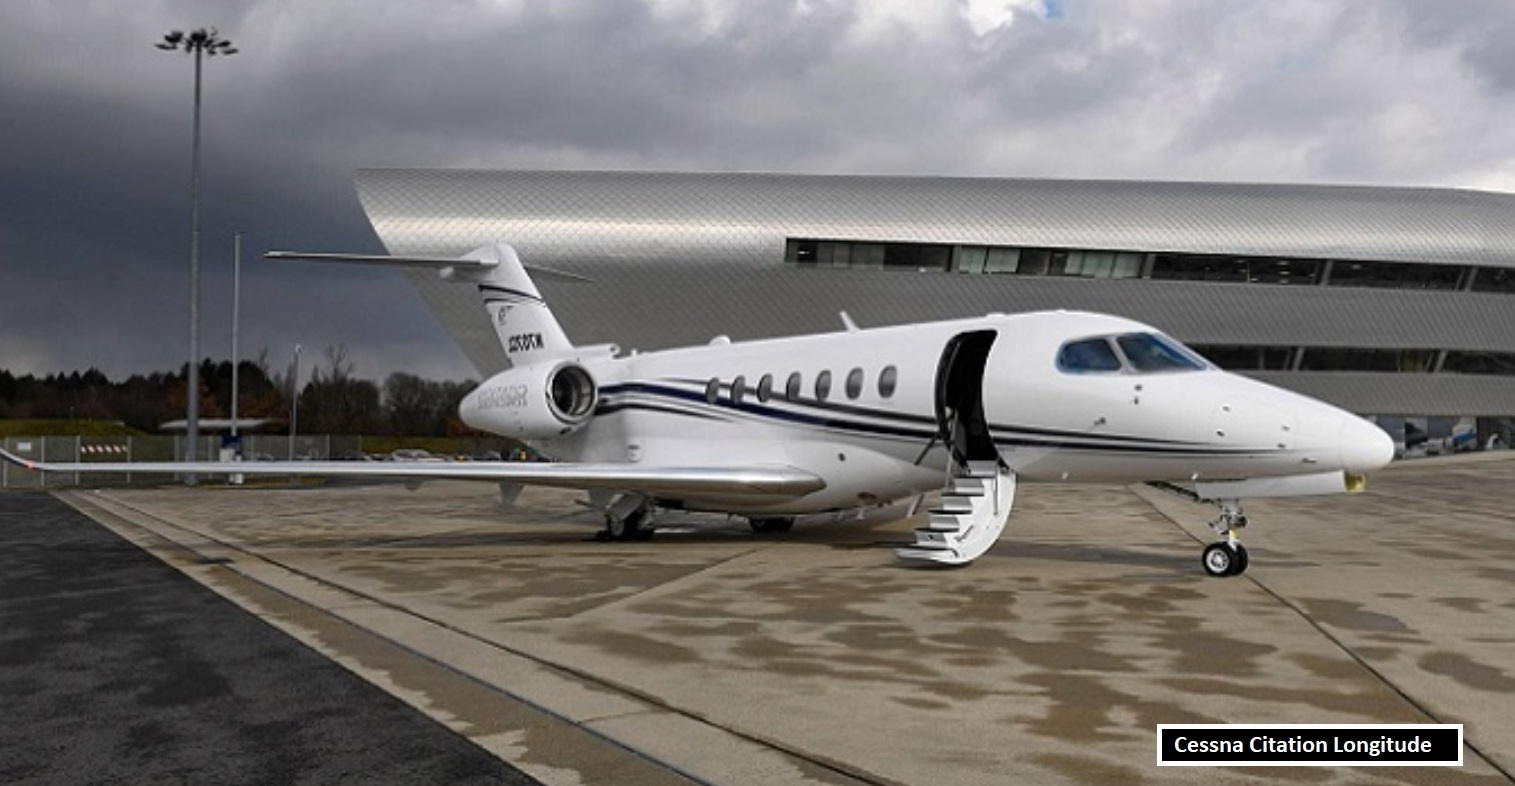 Footballers who own Expensive private jets